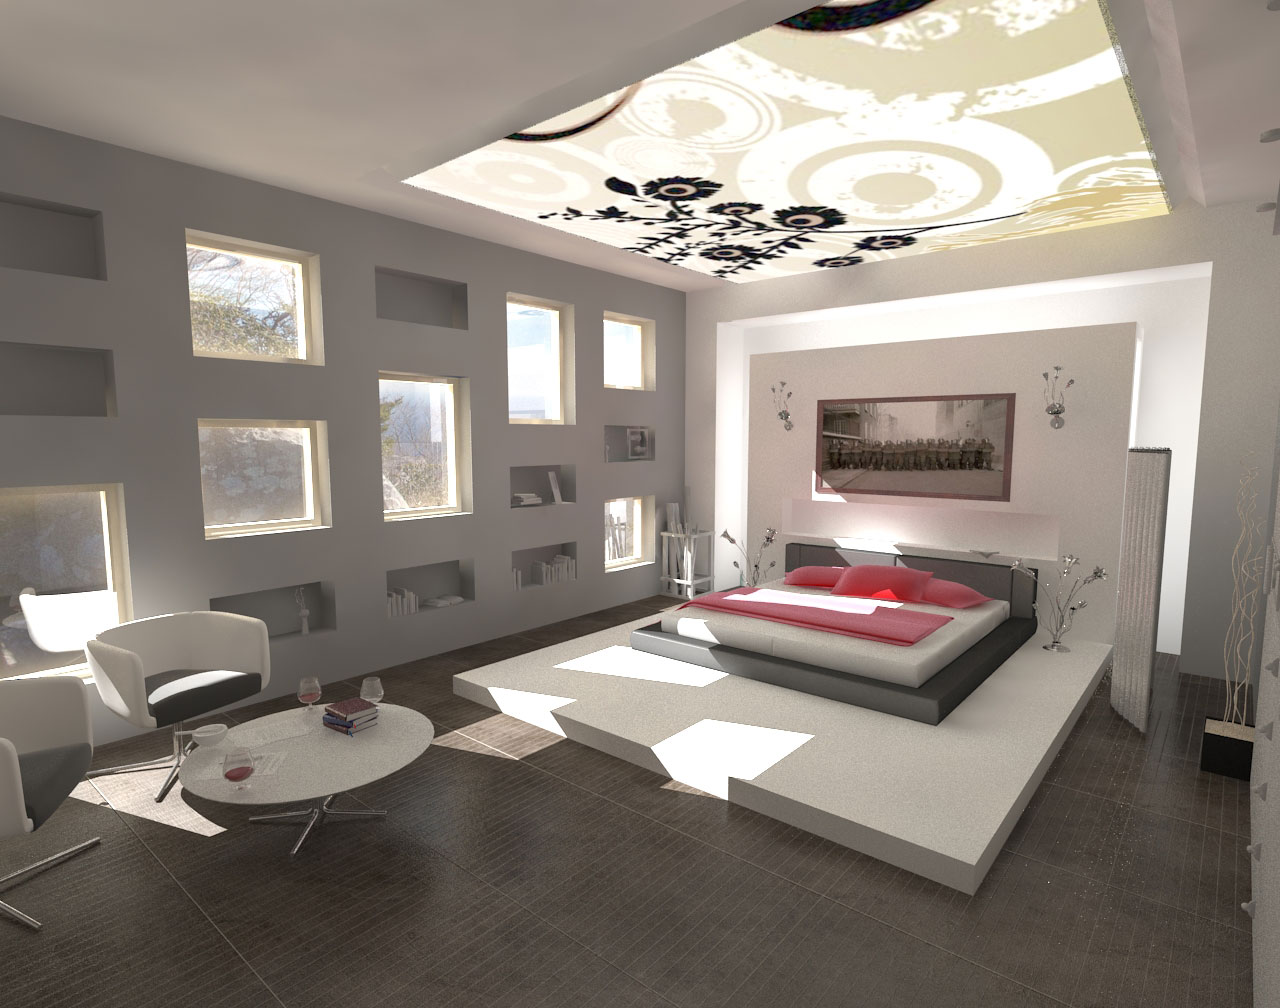 Decorations minimalist design modern bedroom interior for Bedroom interior design photos